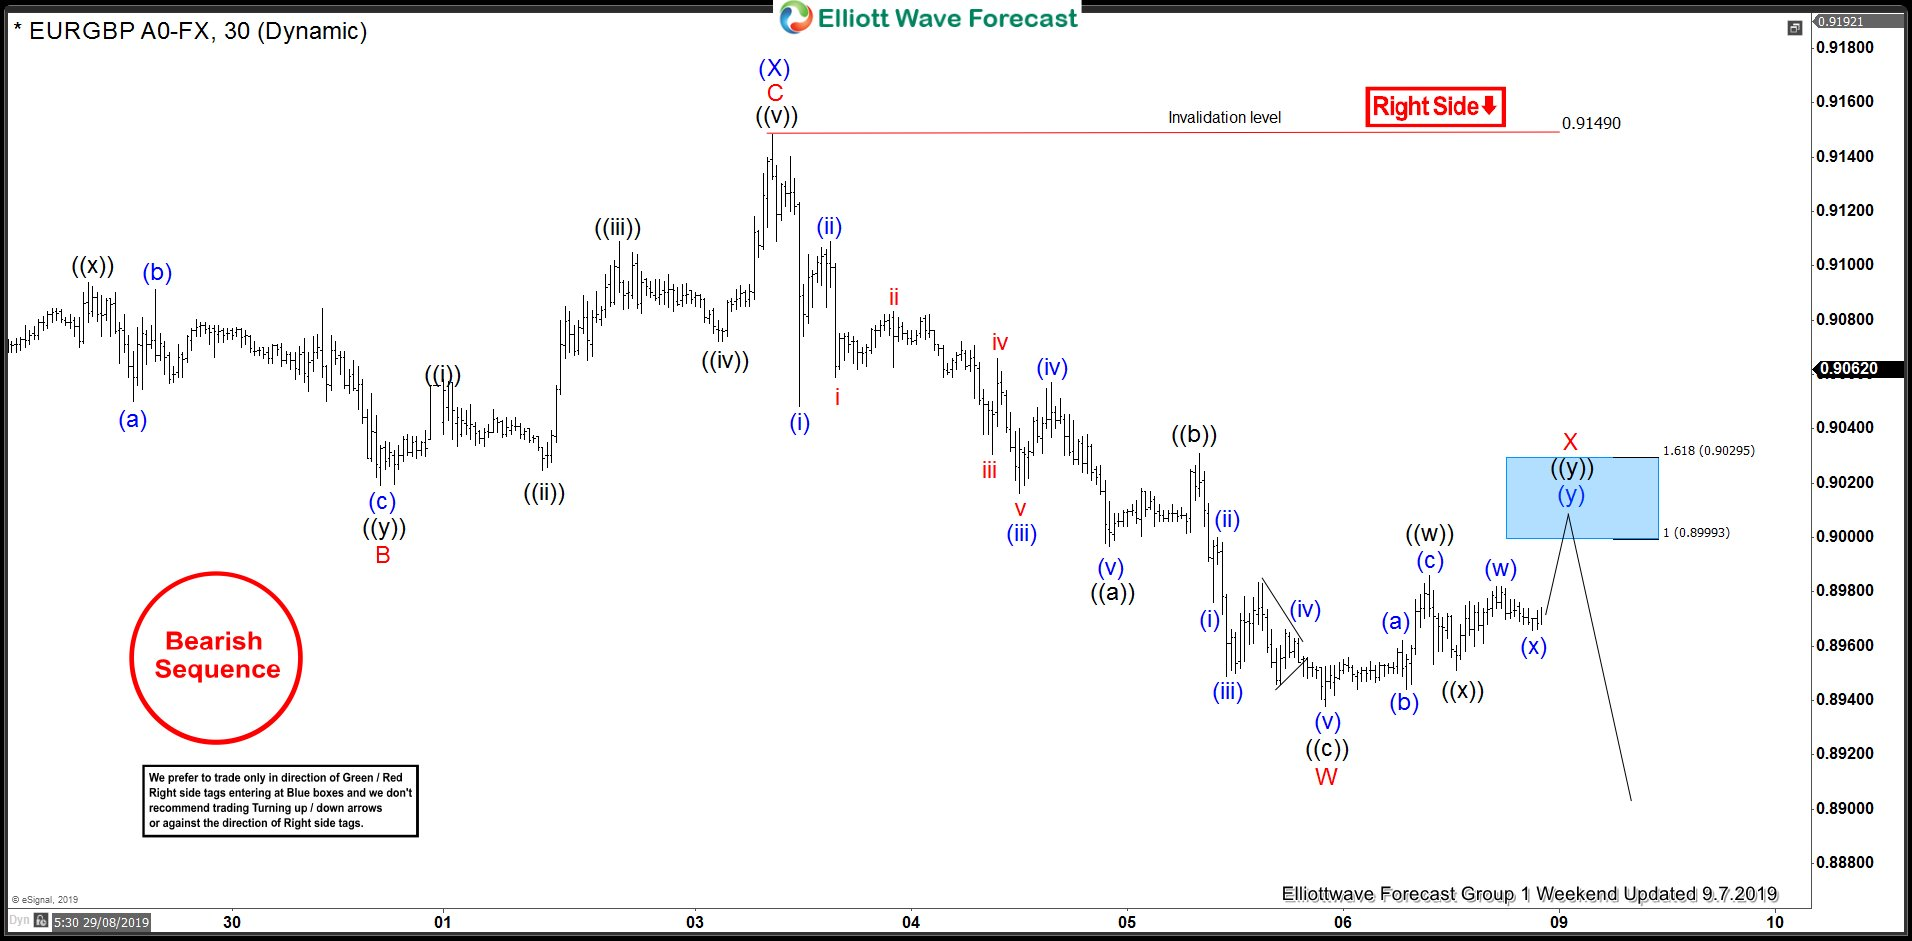 EURGBP 1 Hour London Elliott Wave Analysis